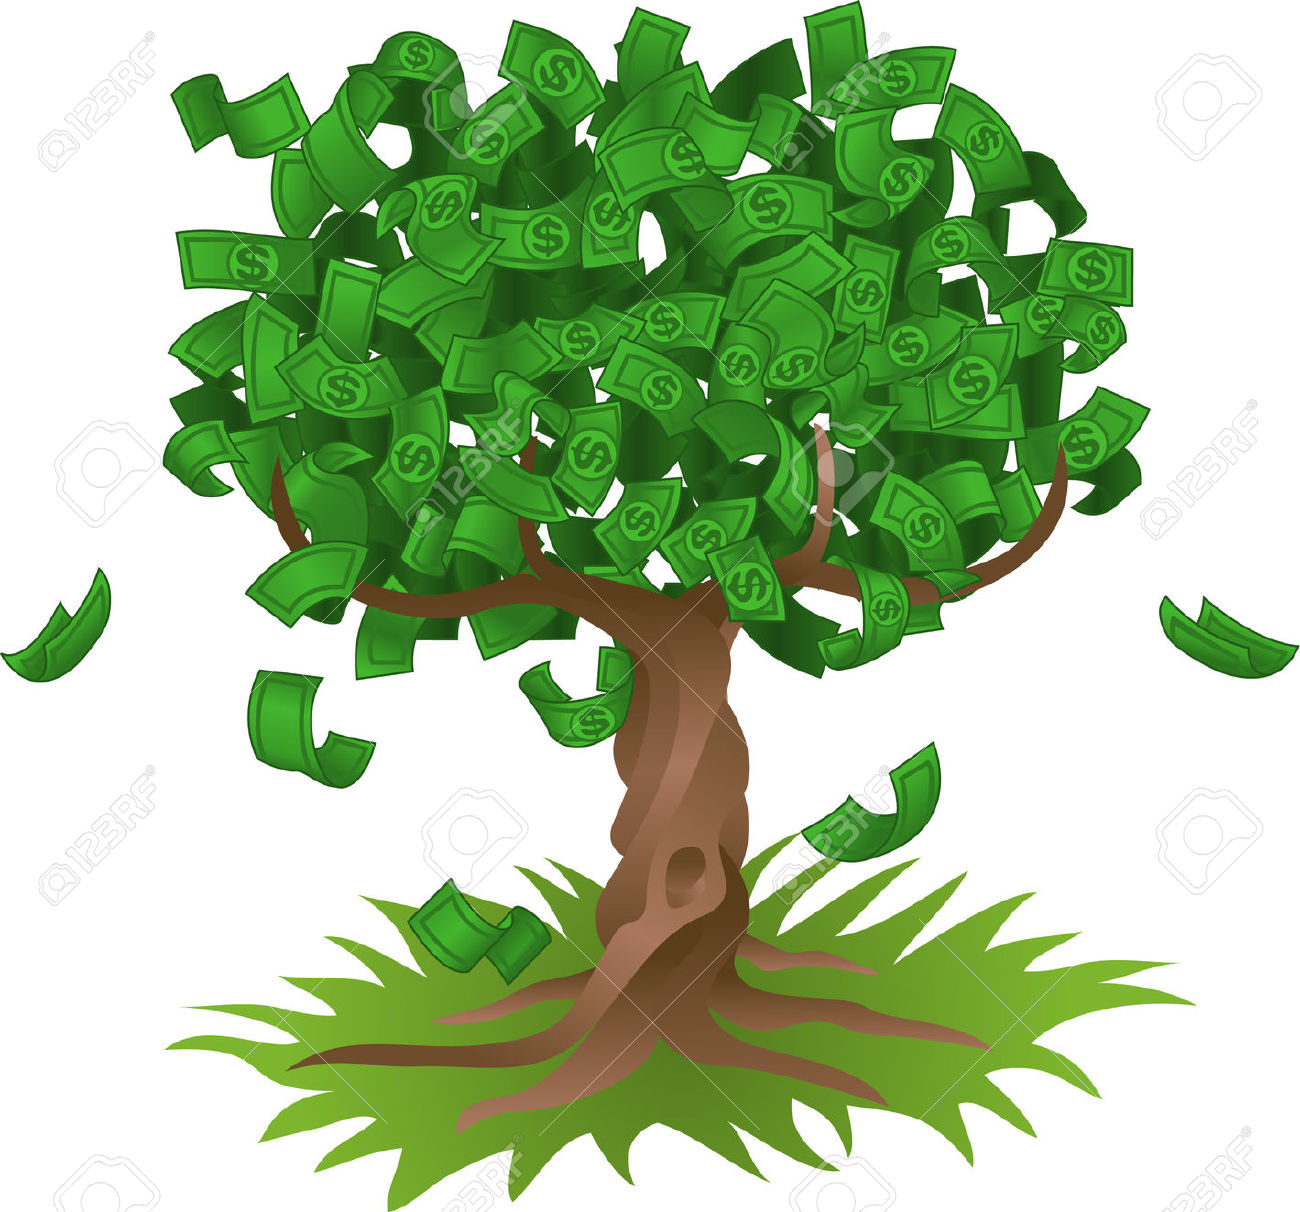 Money clipart money tree Images Tree Clipart Clipart Collection